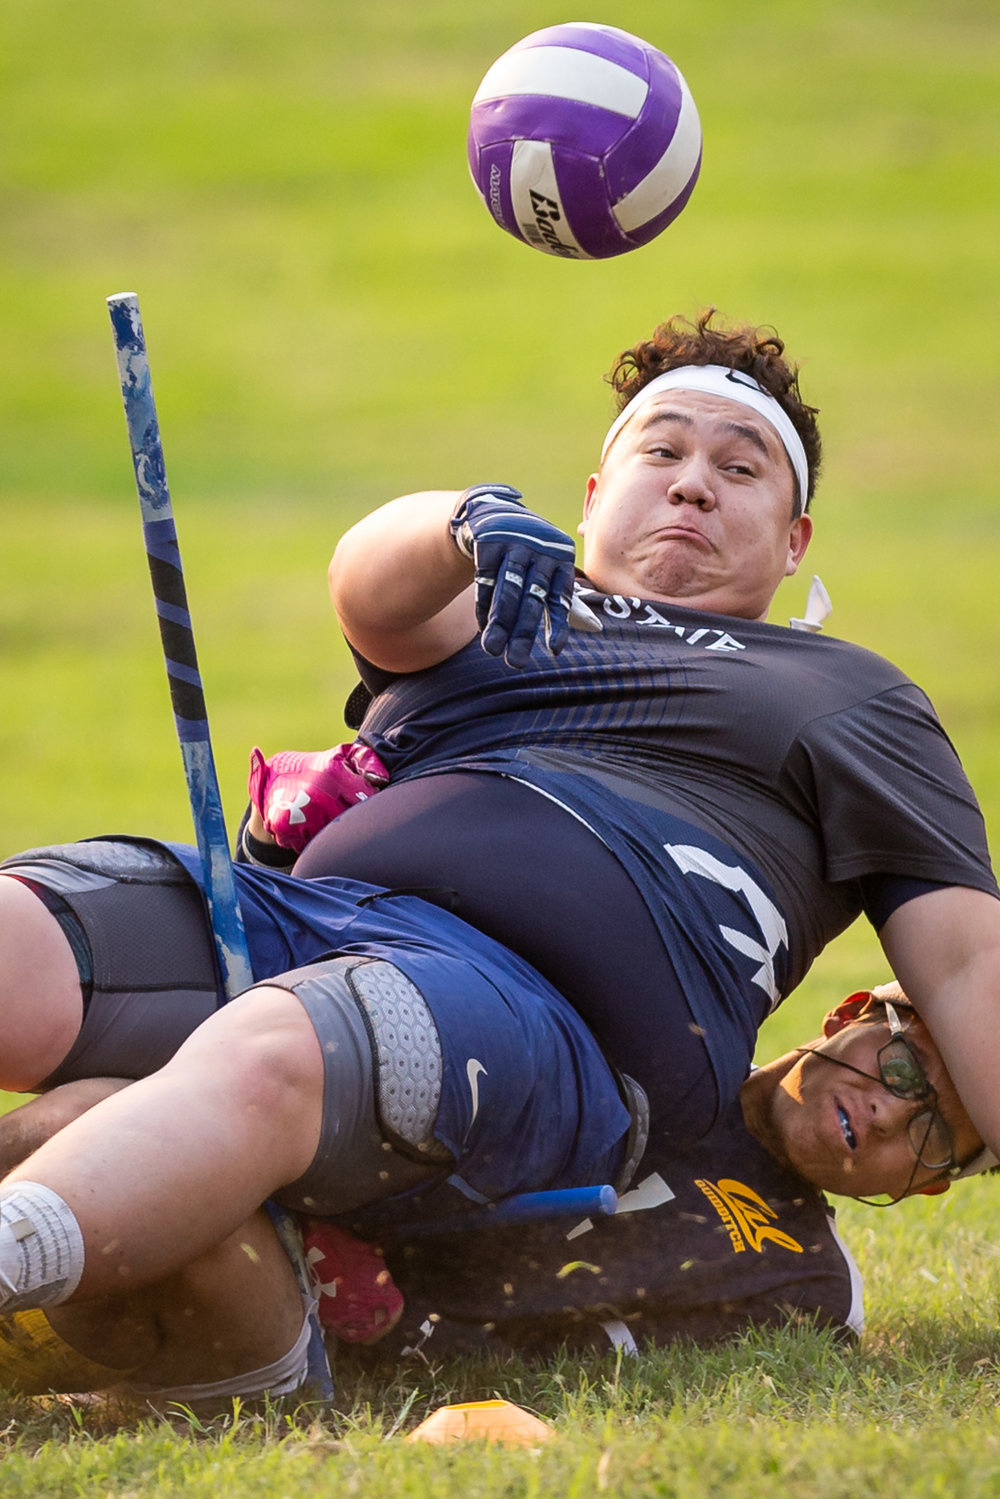 Utah State's Blake Rodman (91) passes the quaffle as he gets taken down by UC Berkeley's Matt Thur (17) during the Chandra Classic quidditch tournament at Redondo Beach, CA, on Nov. 10, 2018. Cal won 170-80 and went on to take first place in the tournament.